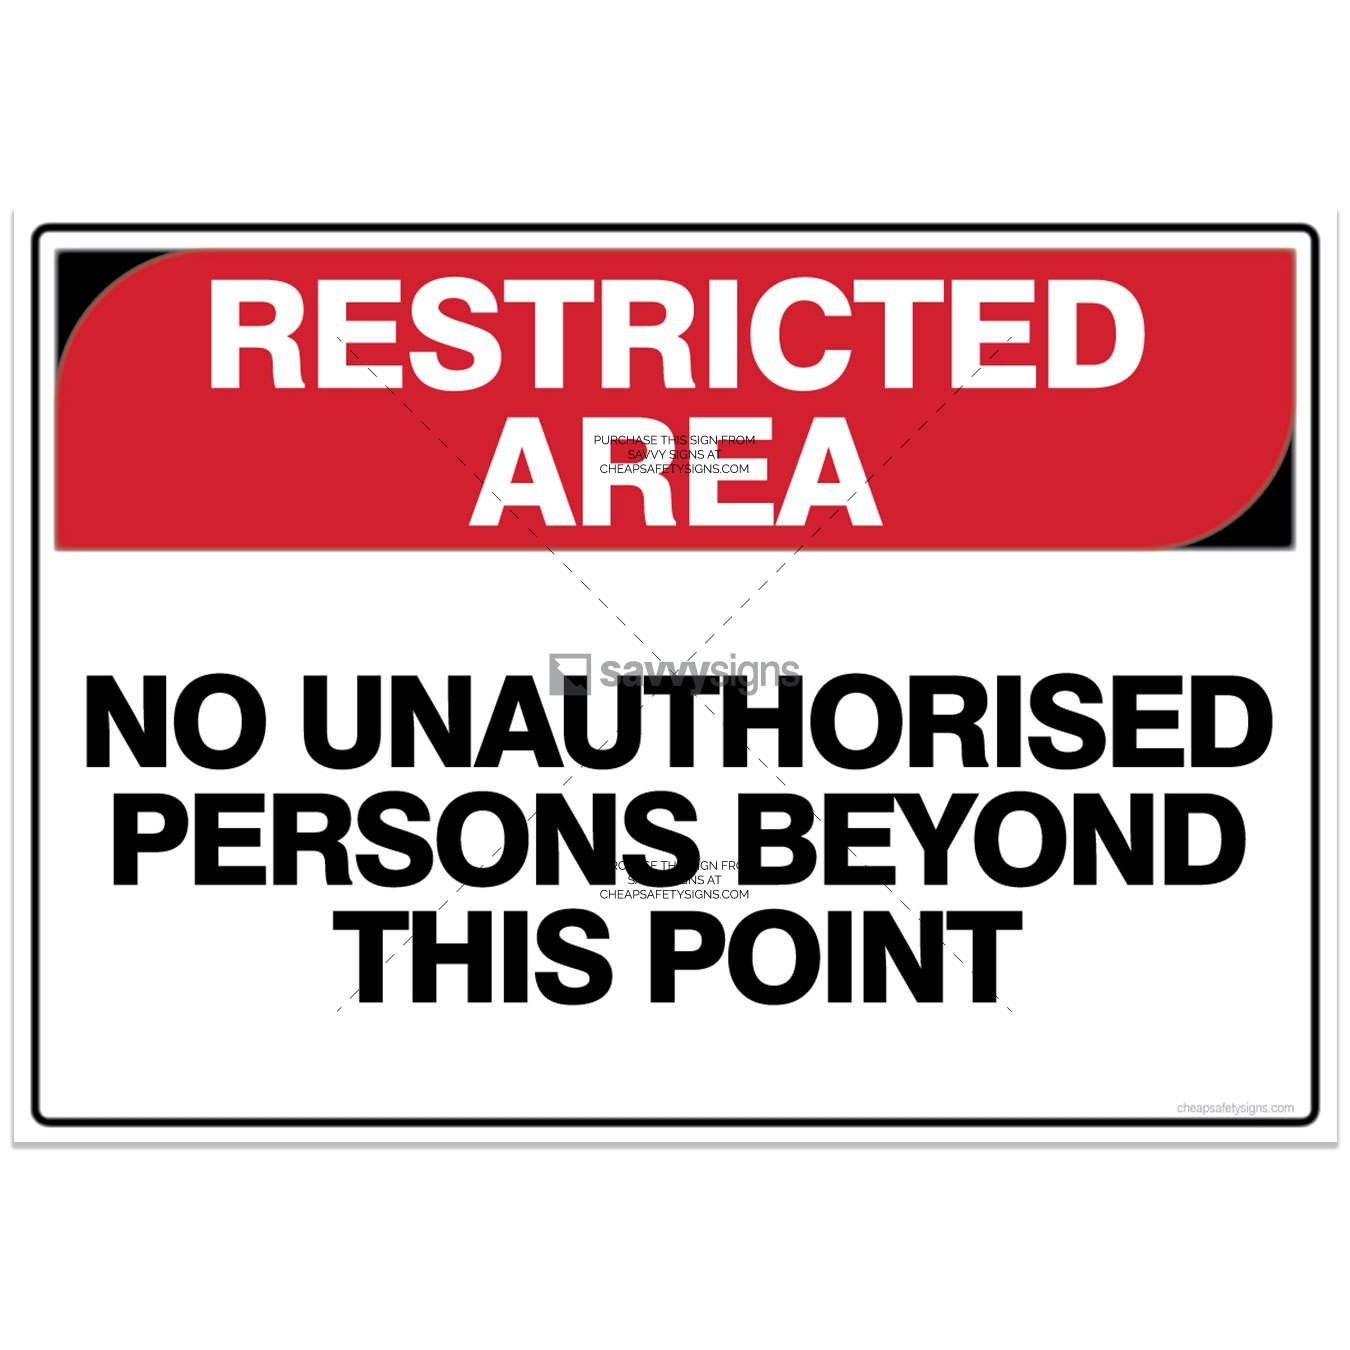 SSRES3030-RESTRICTED-AREA-Workplace-Safety-Signs_Savvy-Signs_v2